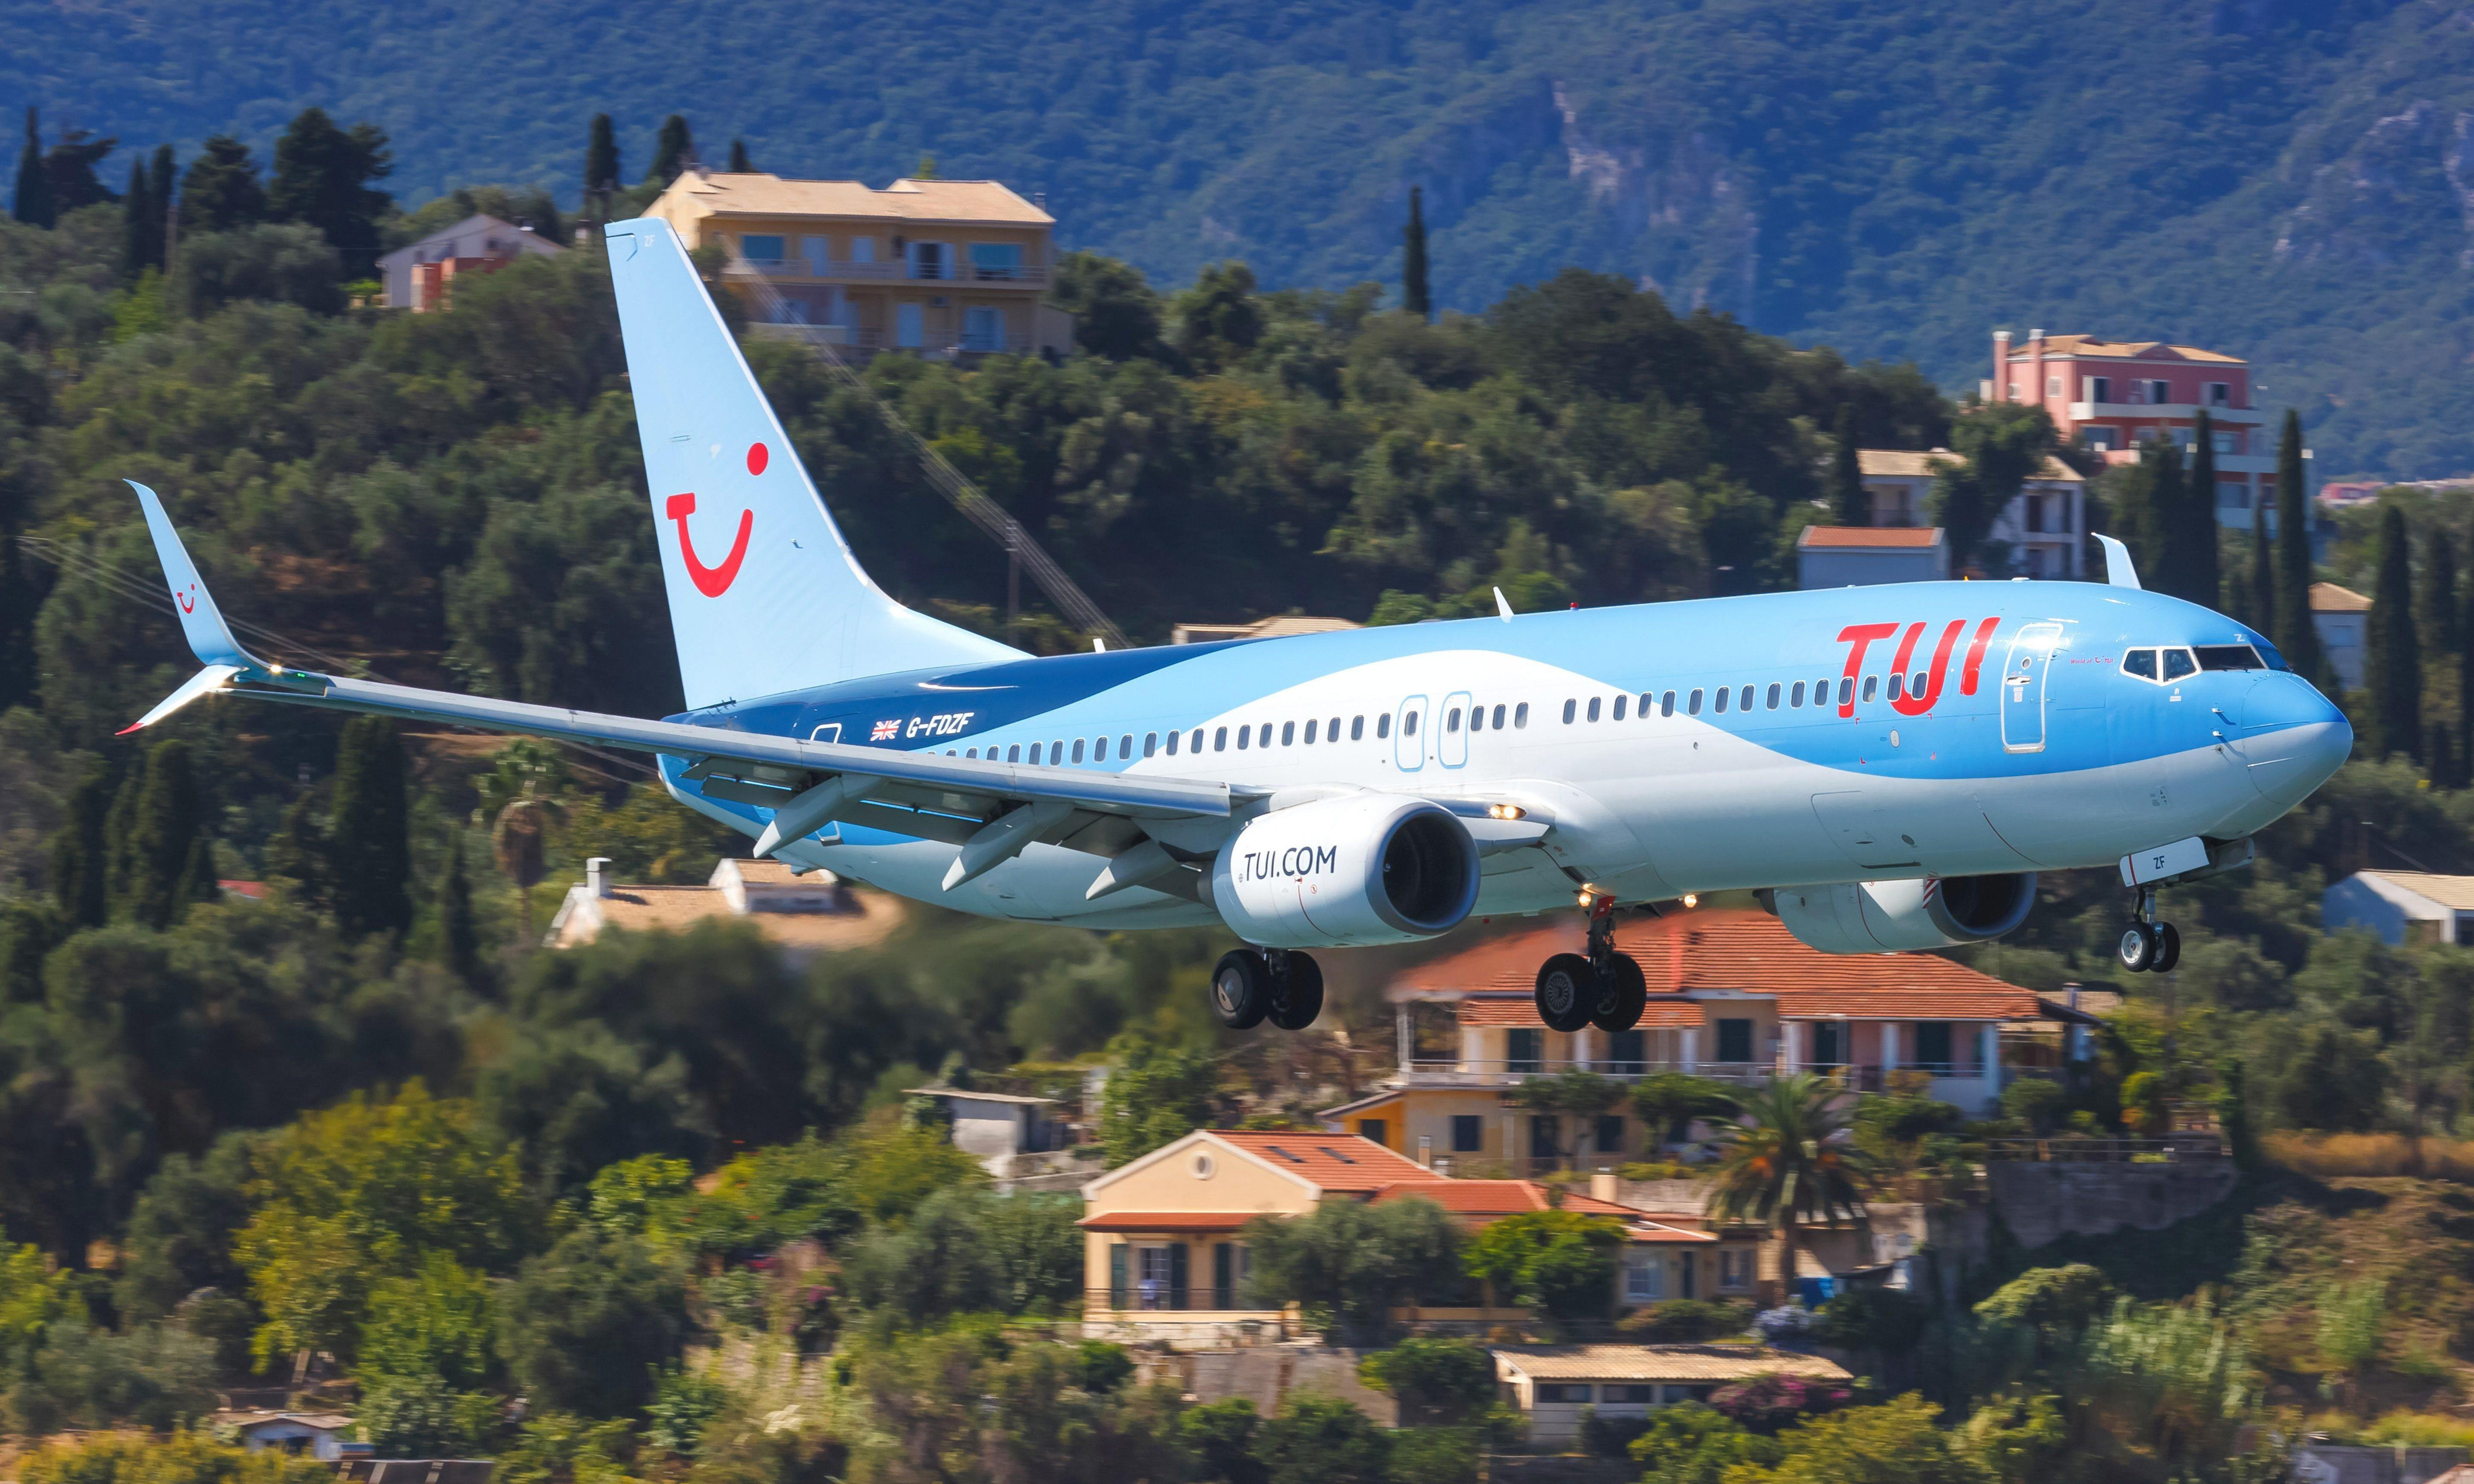 Brexit, Boeing and blistering weather put Tui on the road to trouble